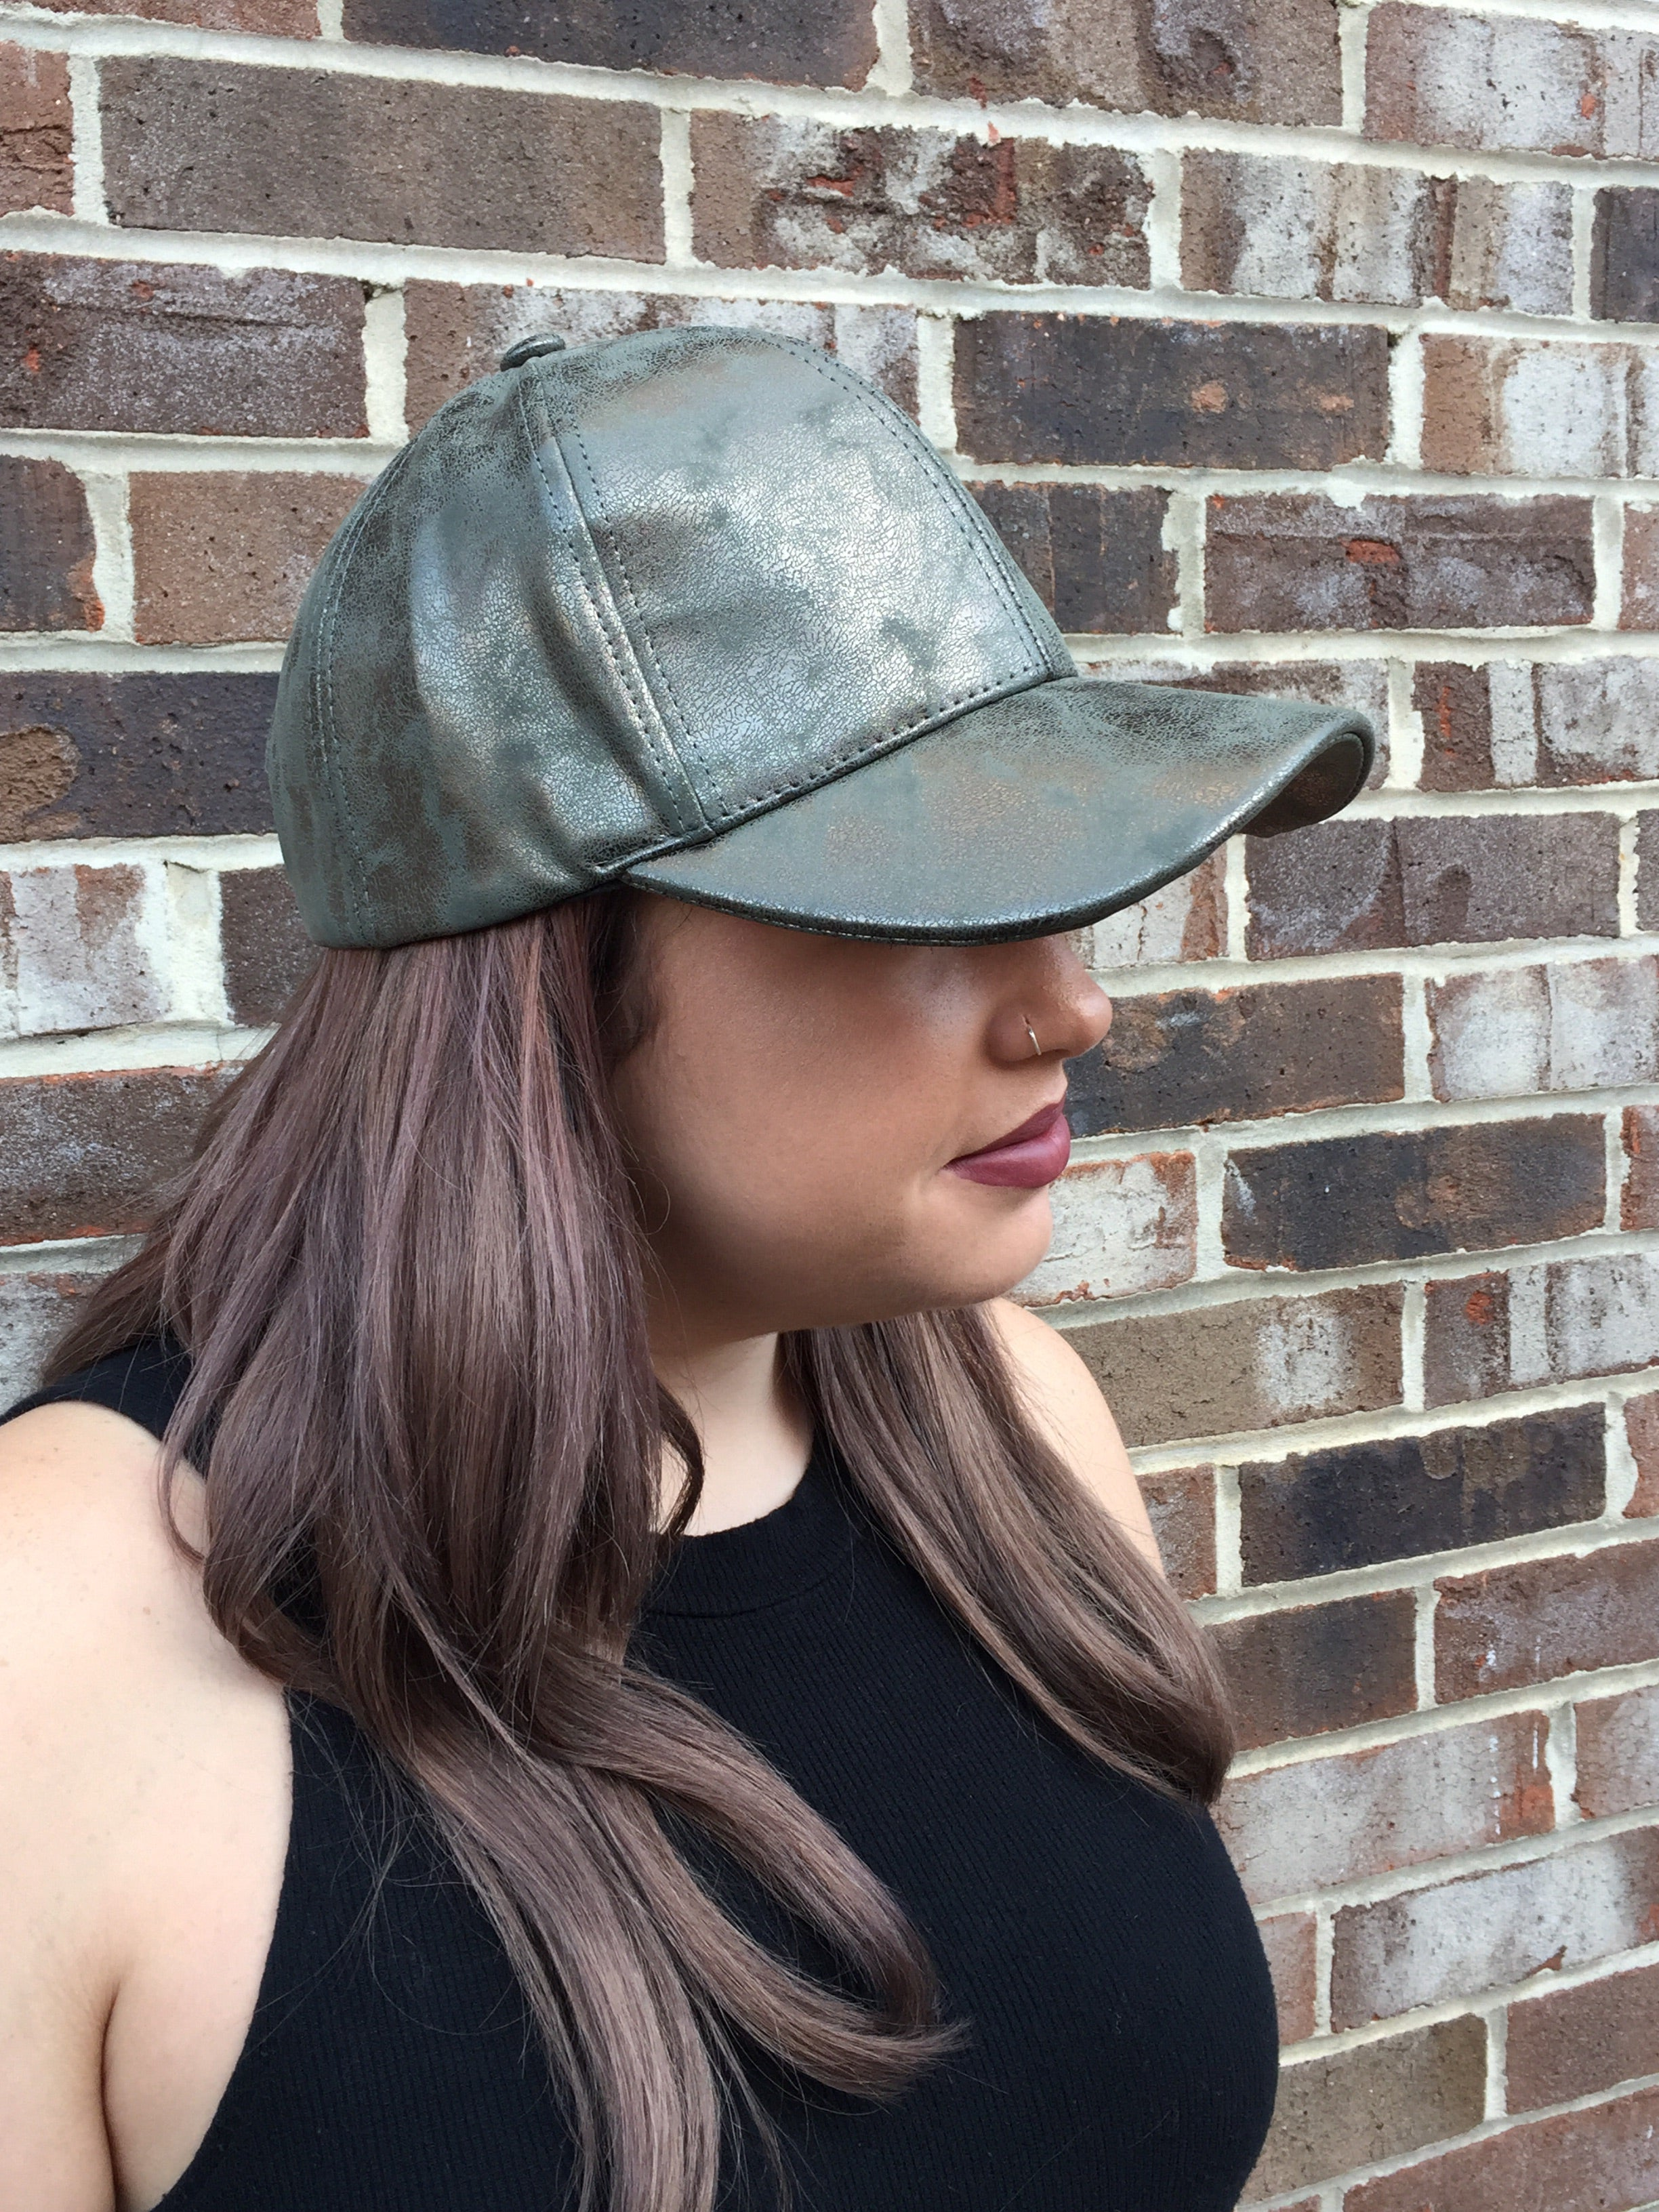 The Metallic Baseball Cap